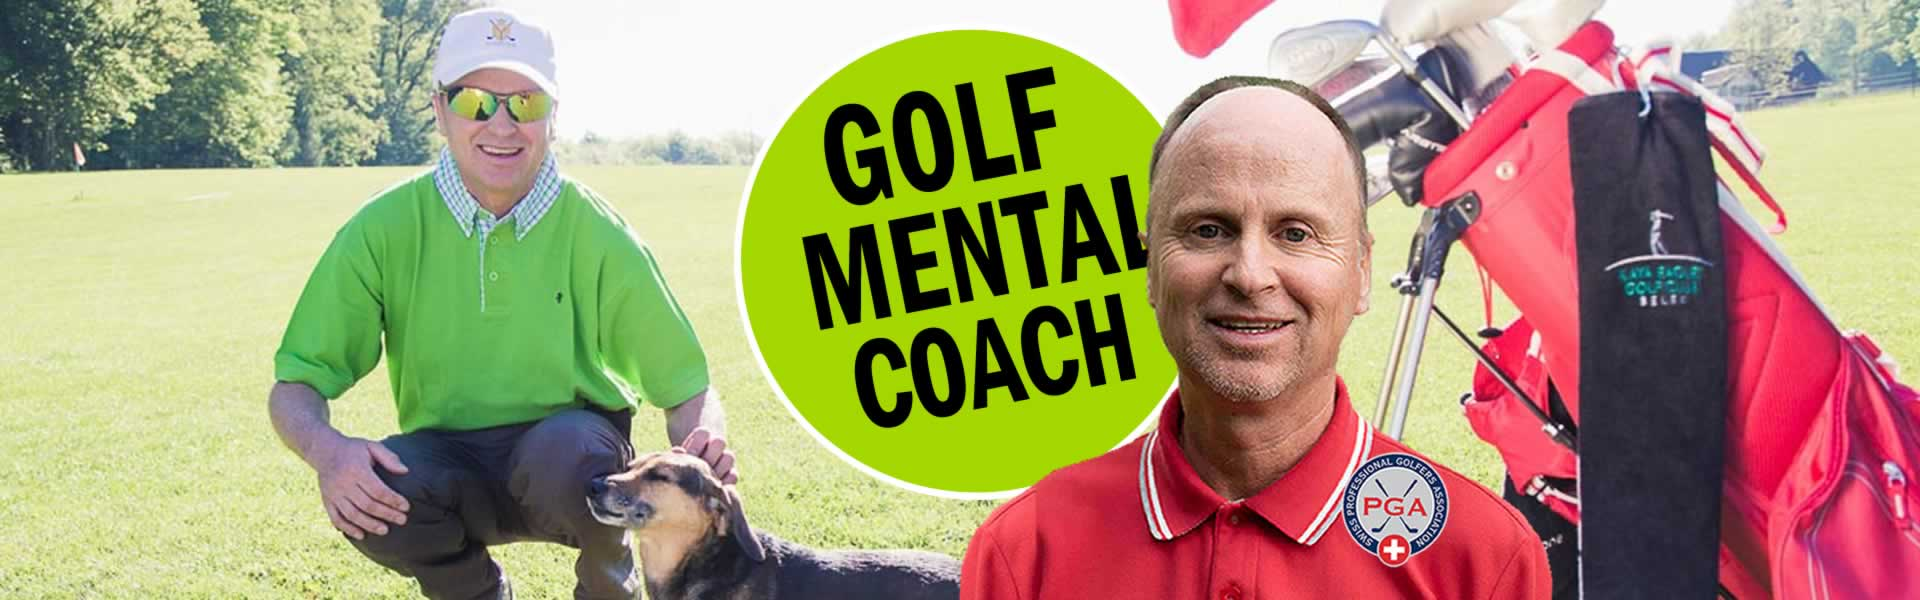 Golf-Zurich-Mental-Coaching-Schweiz-Golf-Pro-Thierry-Rombaldi-03